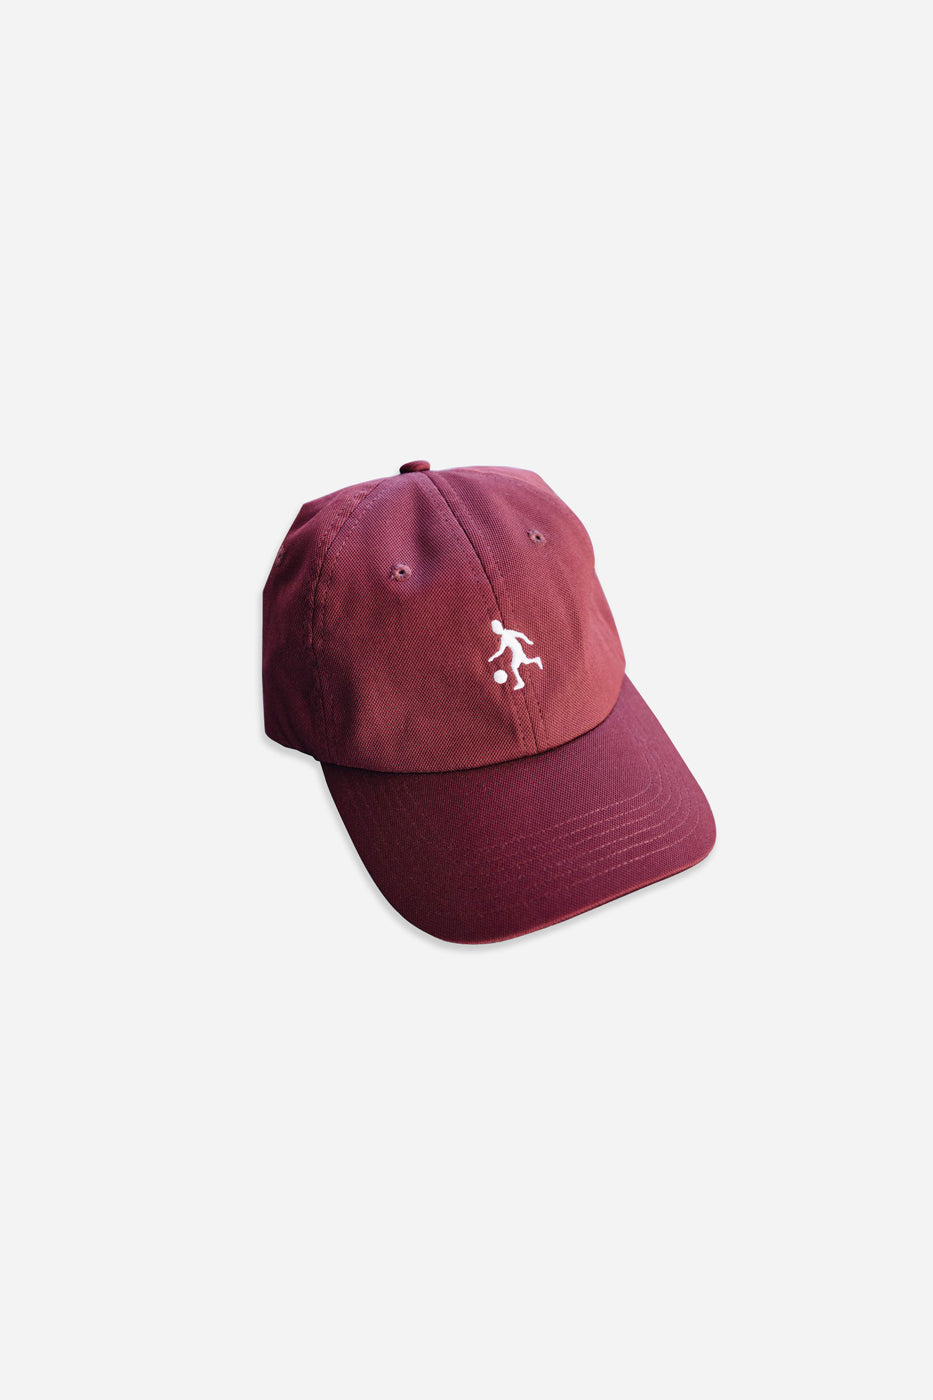 PLAYER ICON POLO CAP BGY